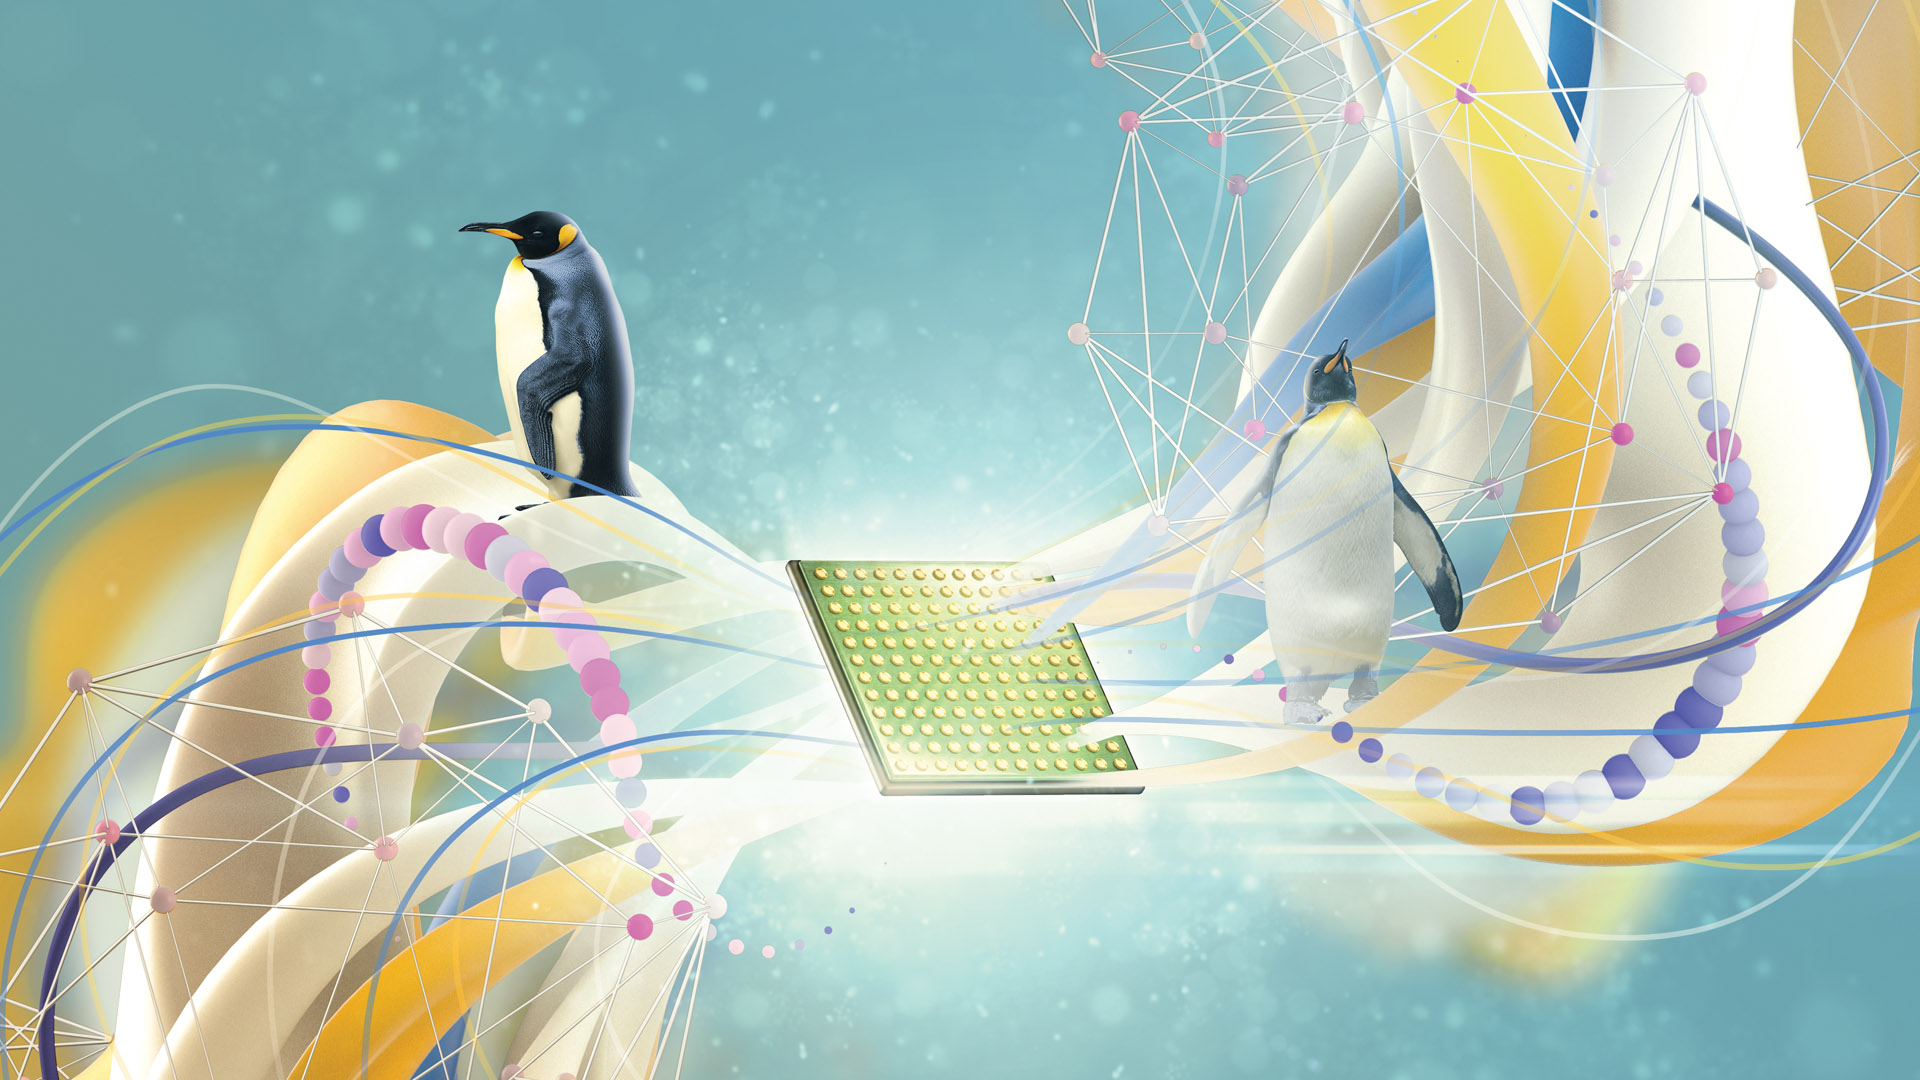 Penguins on illustration